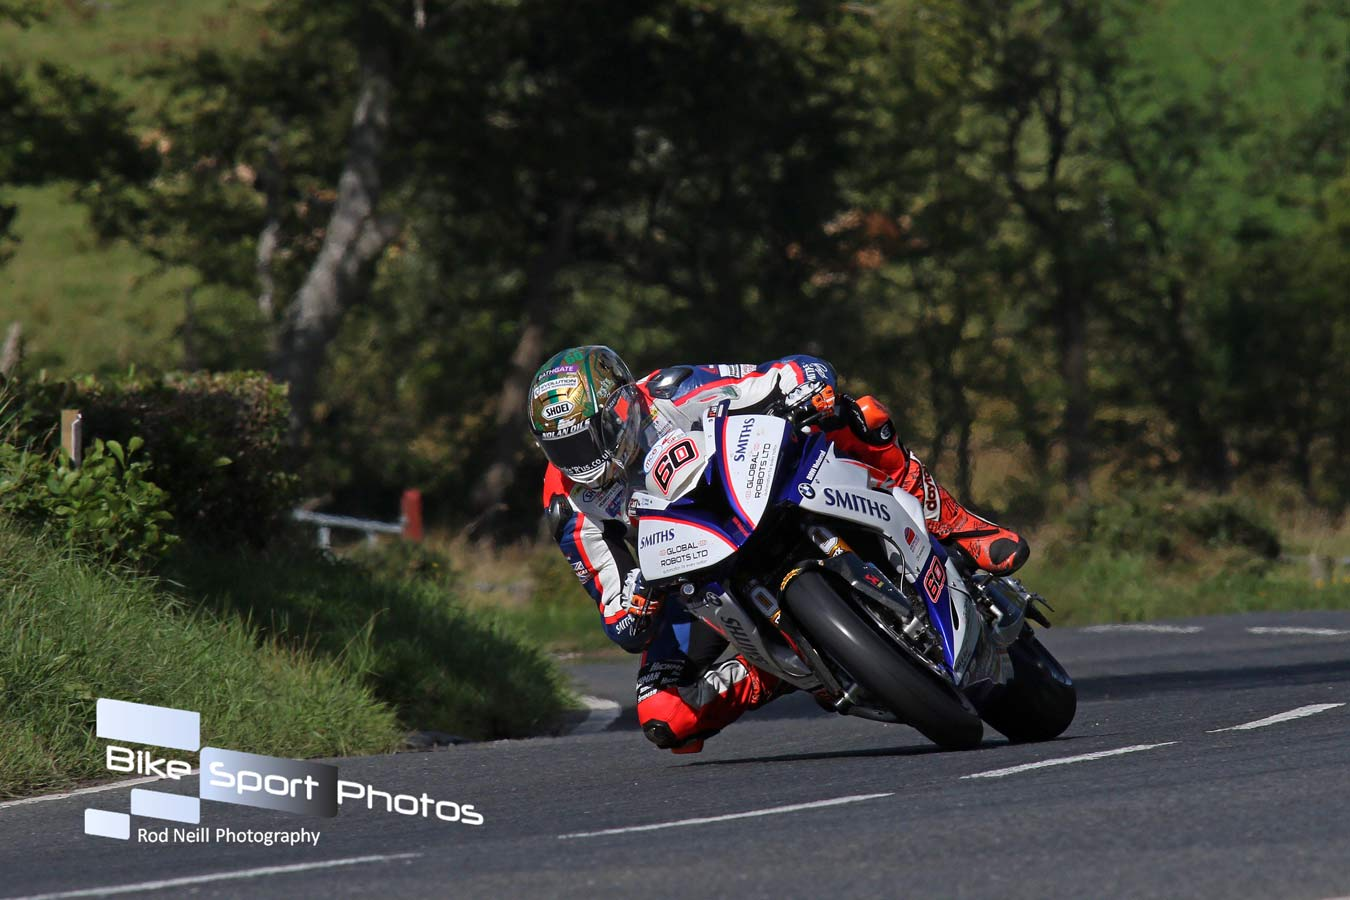 Pure Road Racing To The Fore At Cornmarket Awards Evening